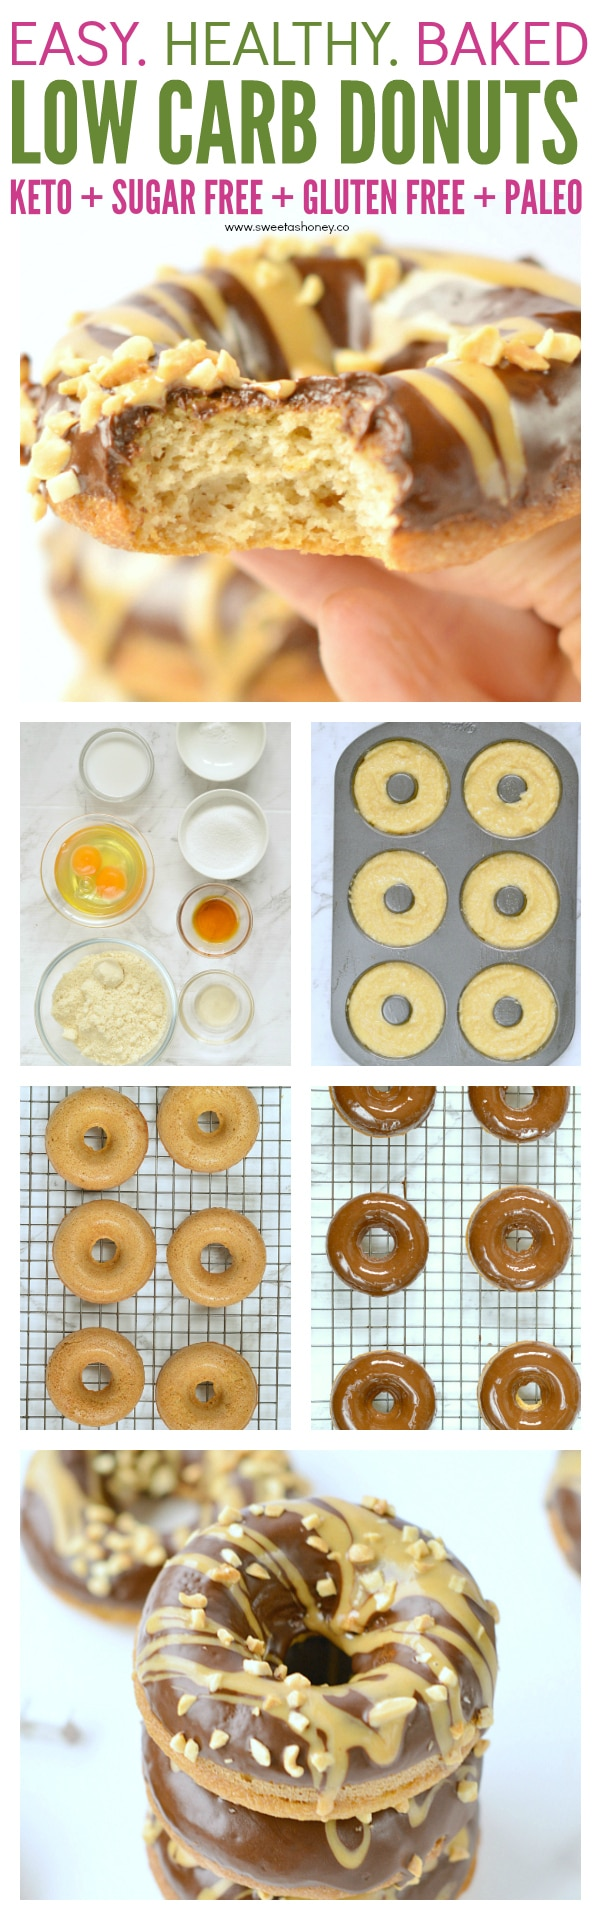 Low carb donuts